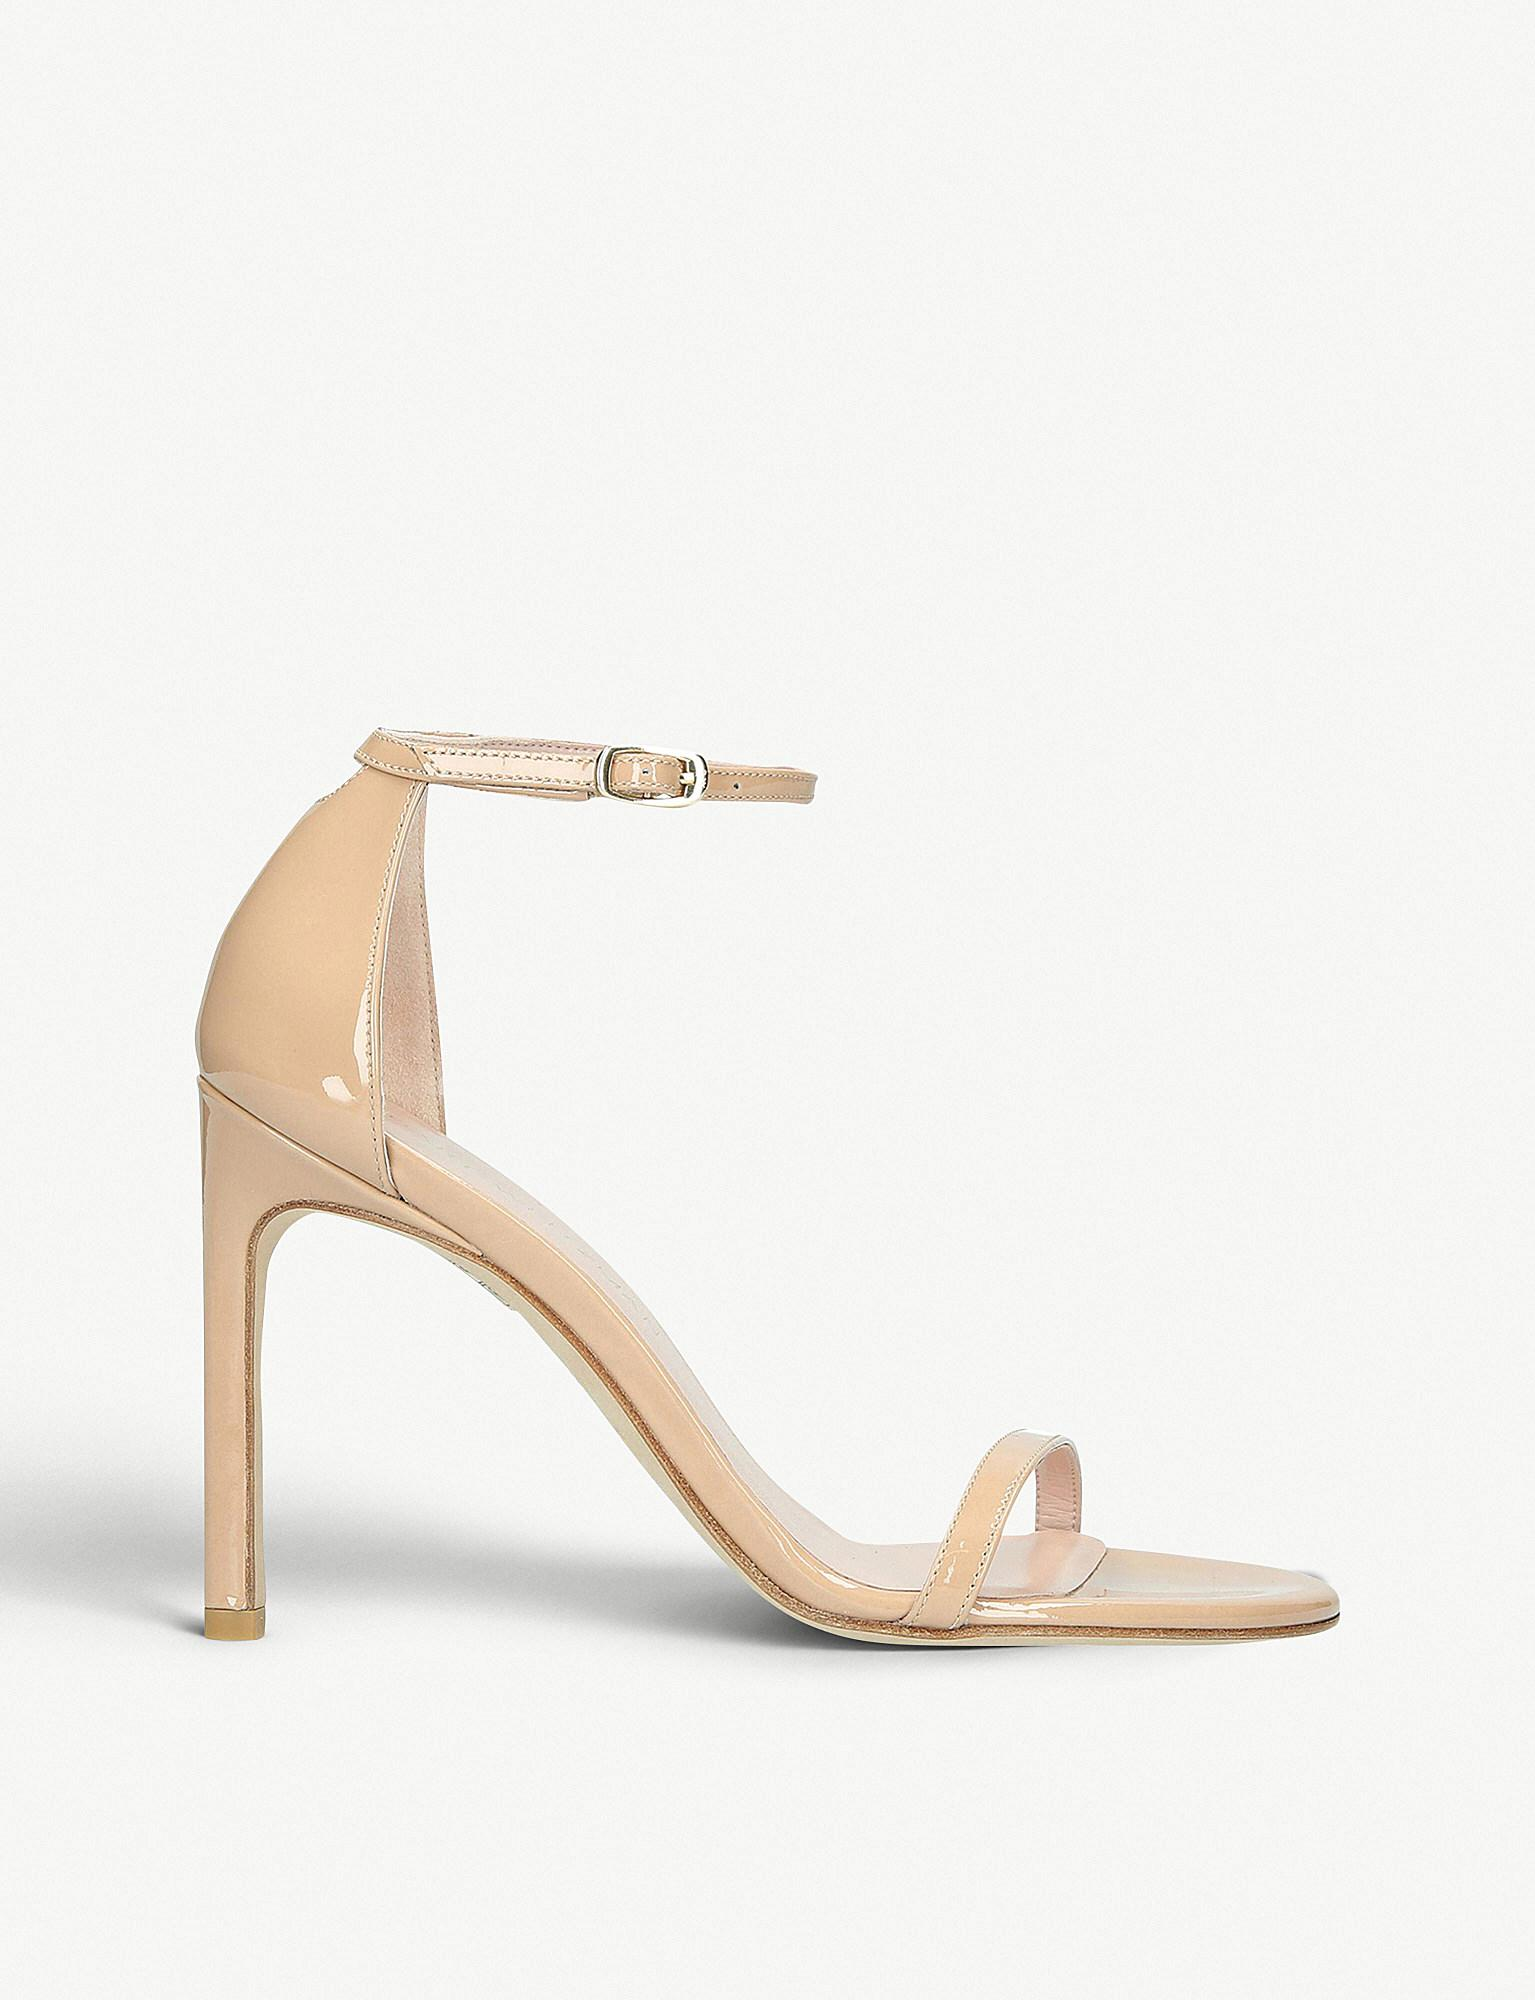 3780af9daffe Lyst - Stuart Weitzman Nudistsong Patent-leather Two-part Sandals